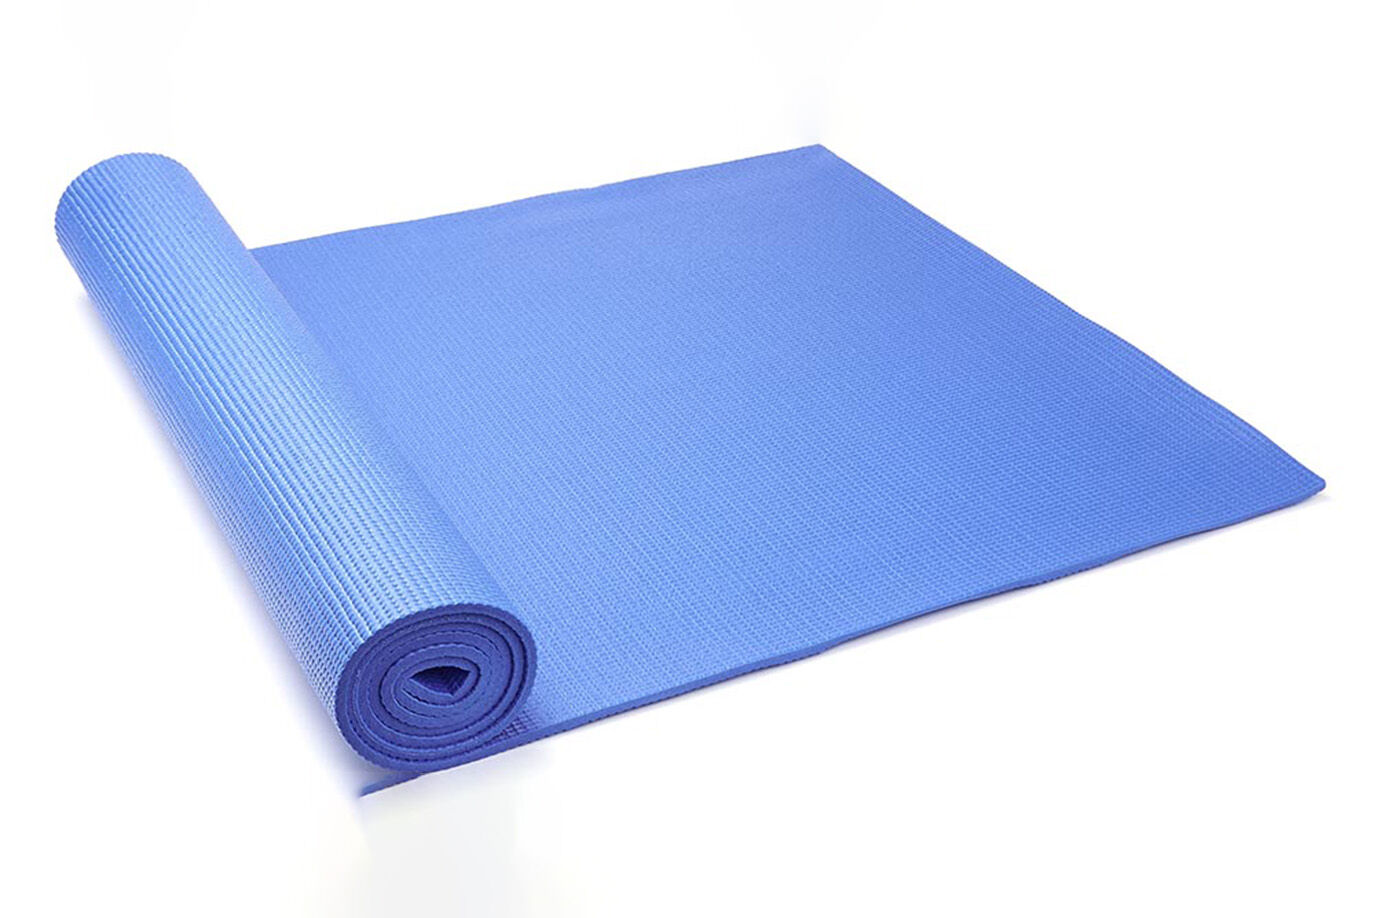 Yoga Mat by JTX Fitness